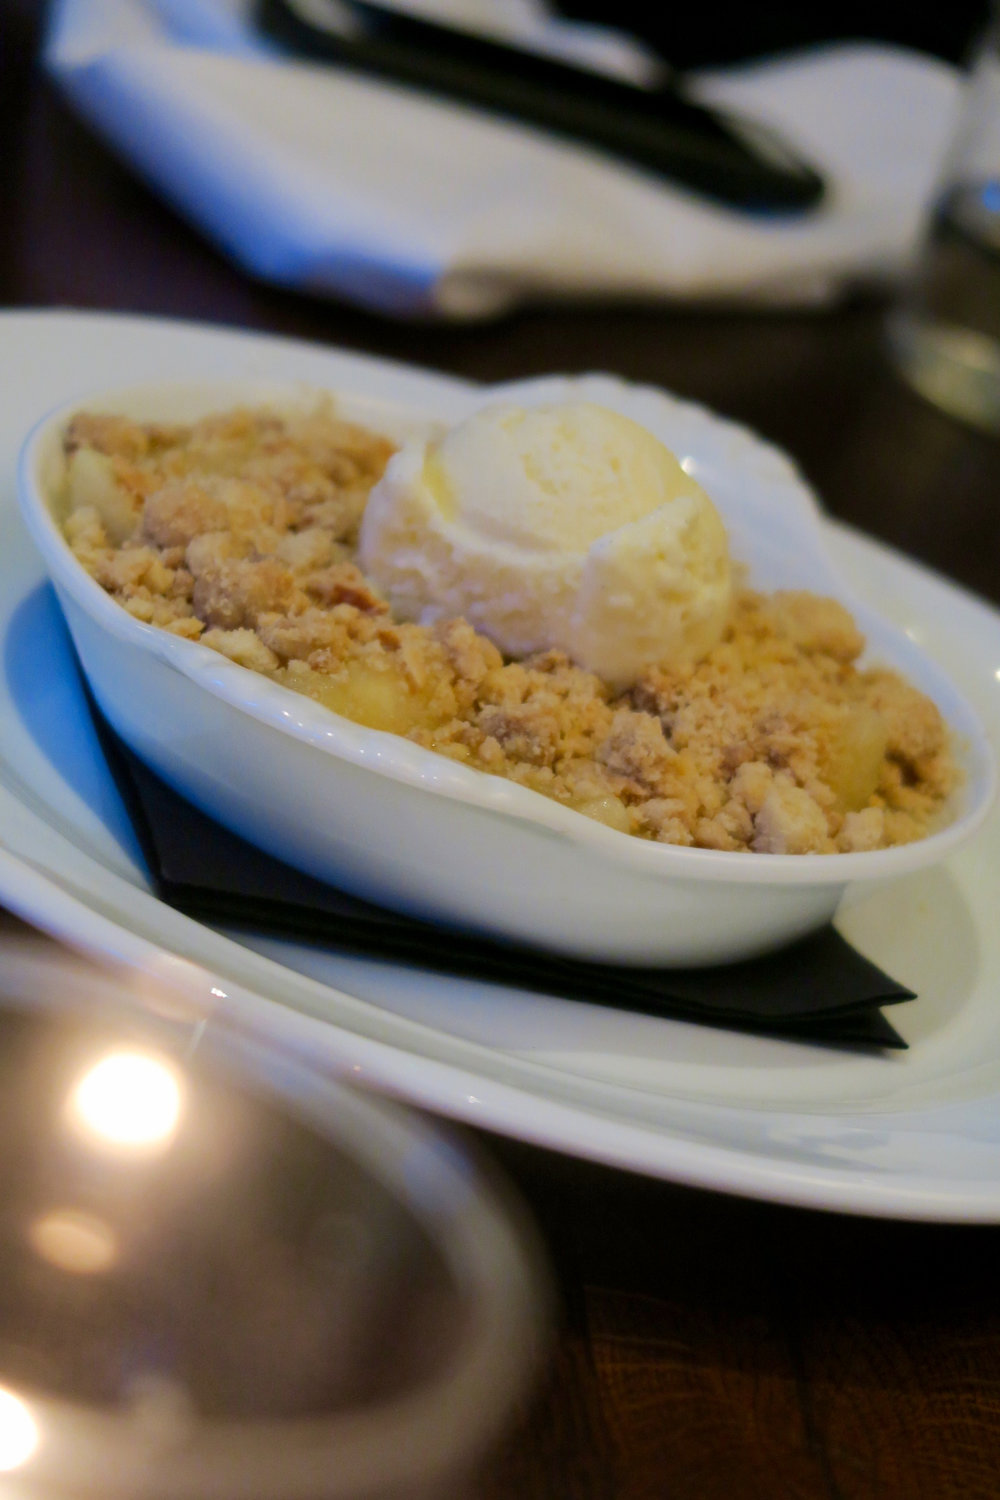 Apple and ginger crumble, ice cream